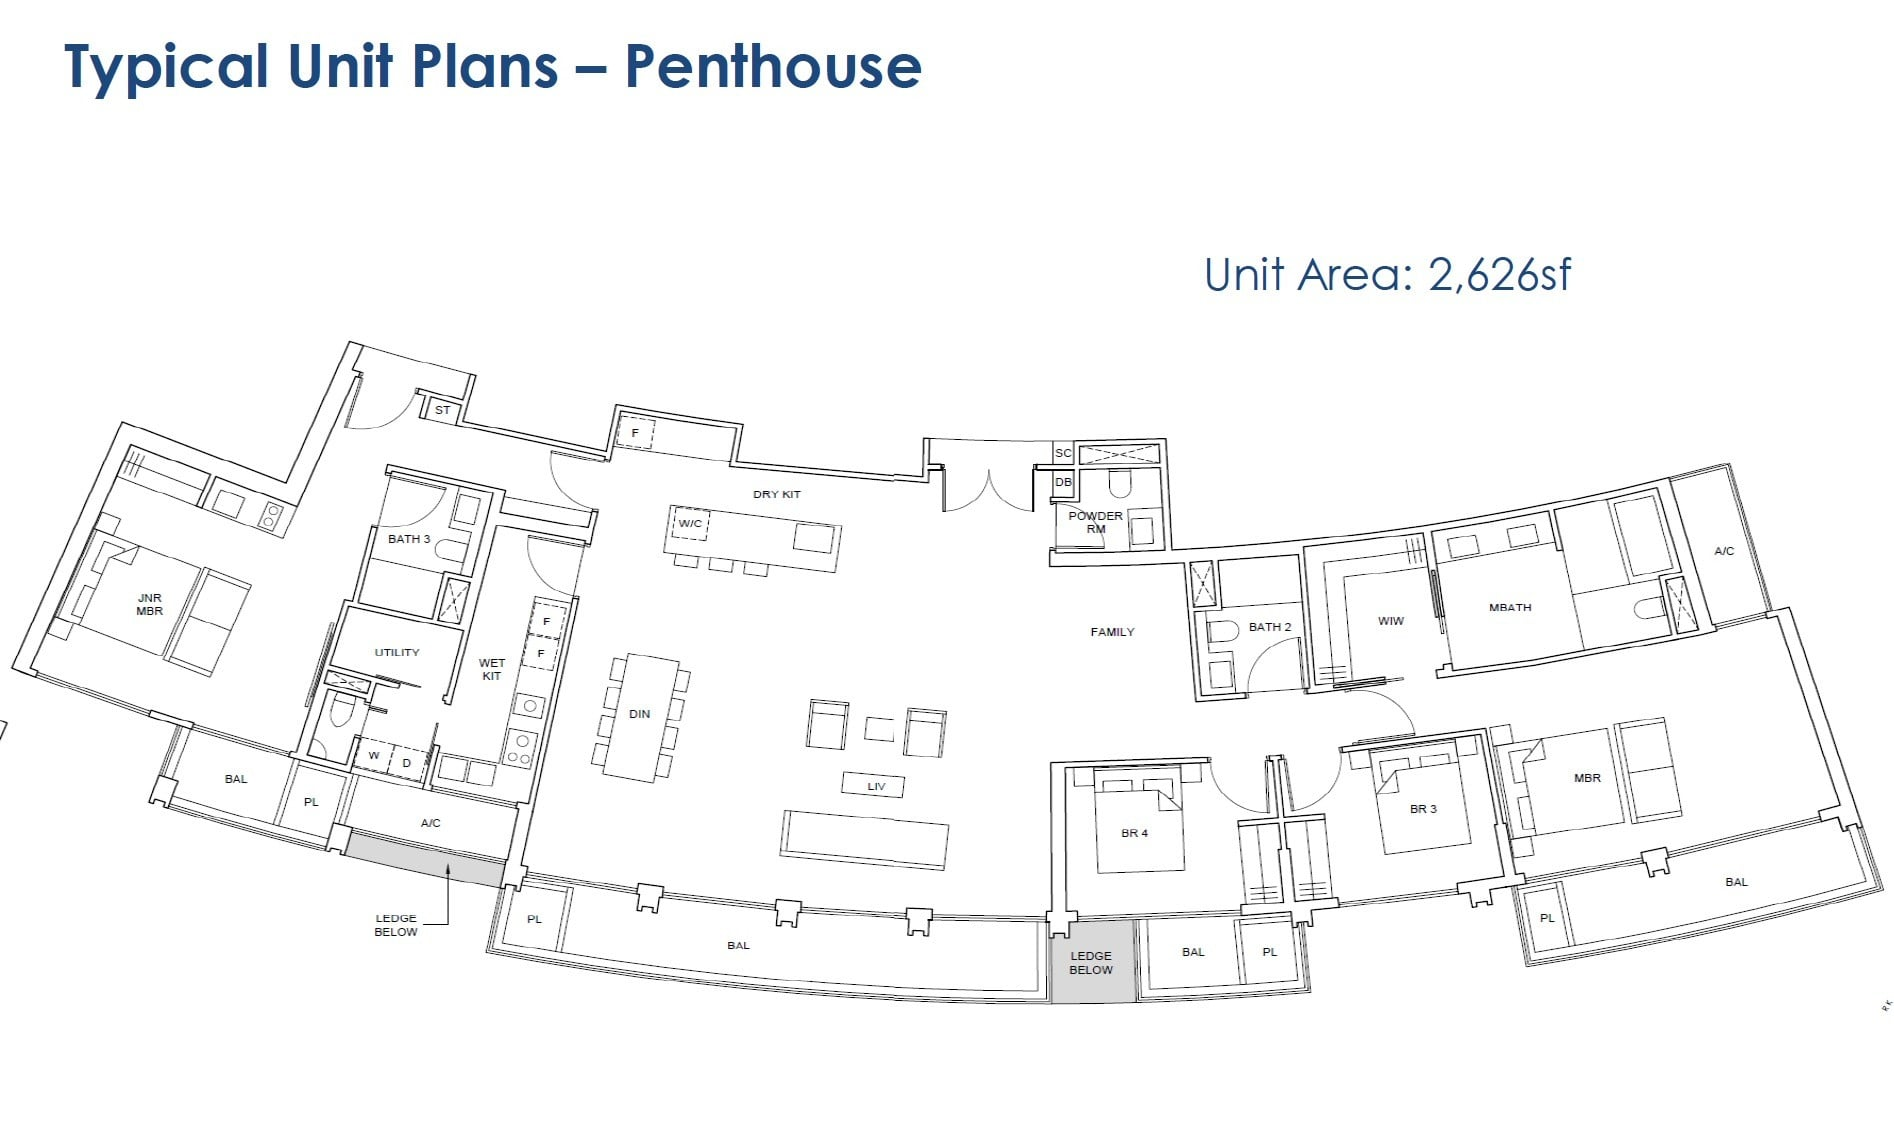 One-Pearl-Bank-floor Plan - Penthouse